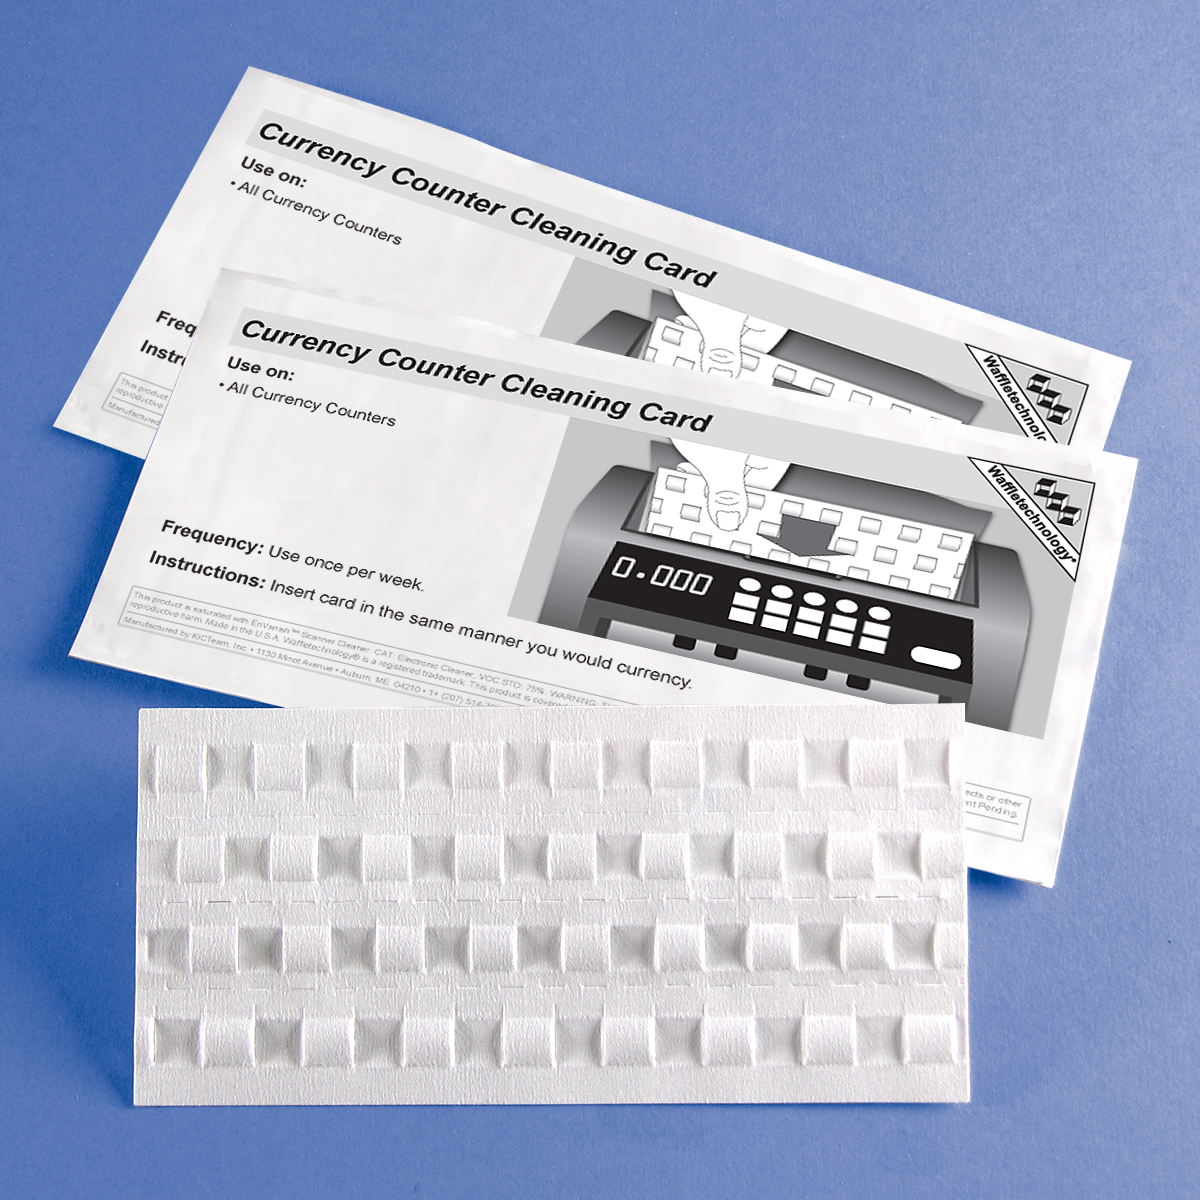 Currency Counter Cleaning Card featuring Waffletechnology®